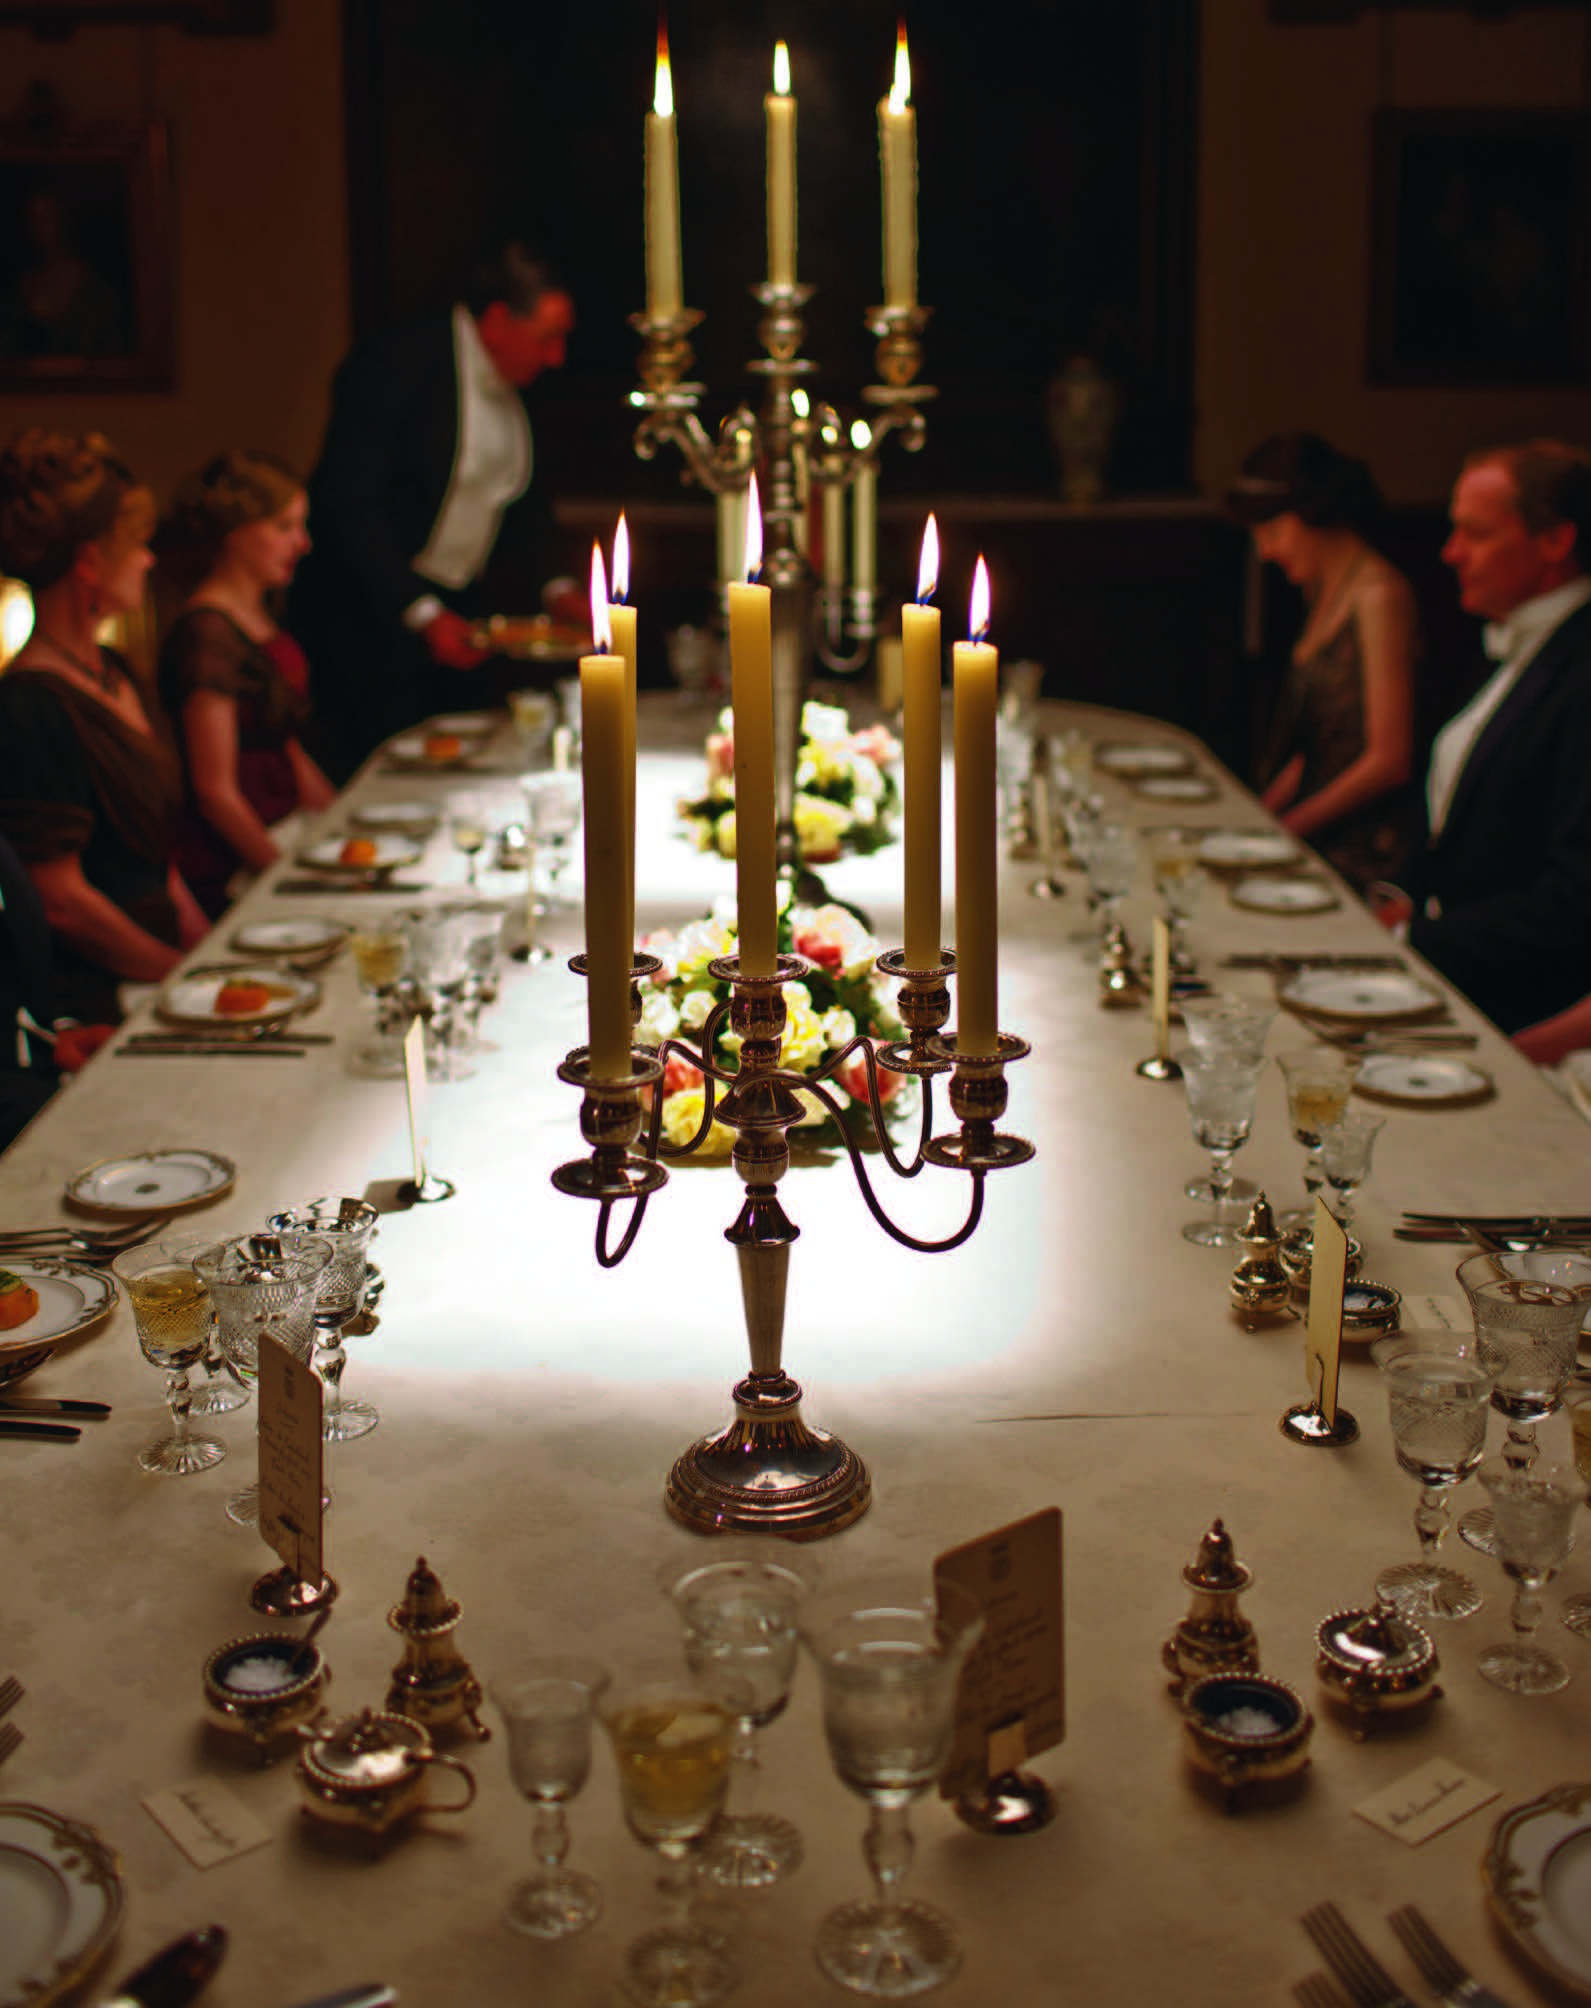 People seated at dining table